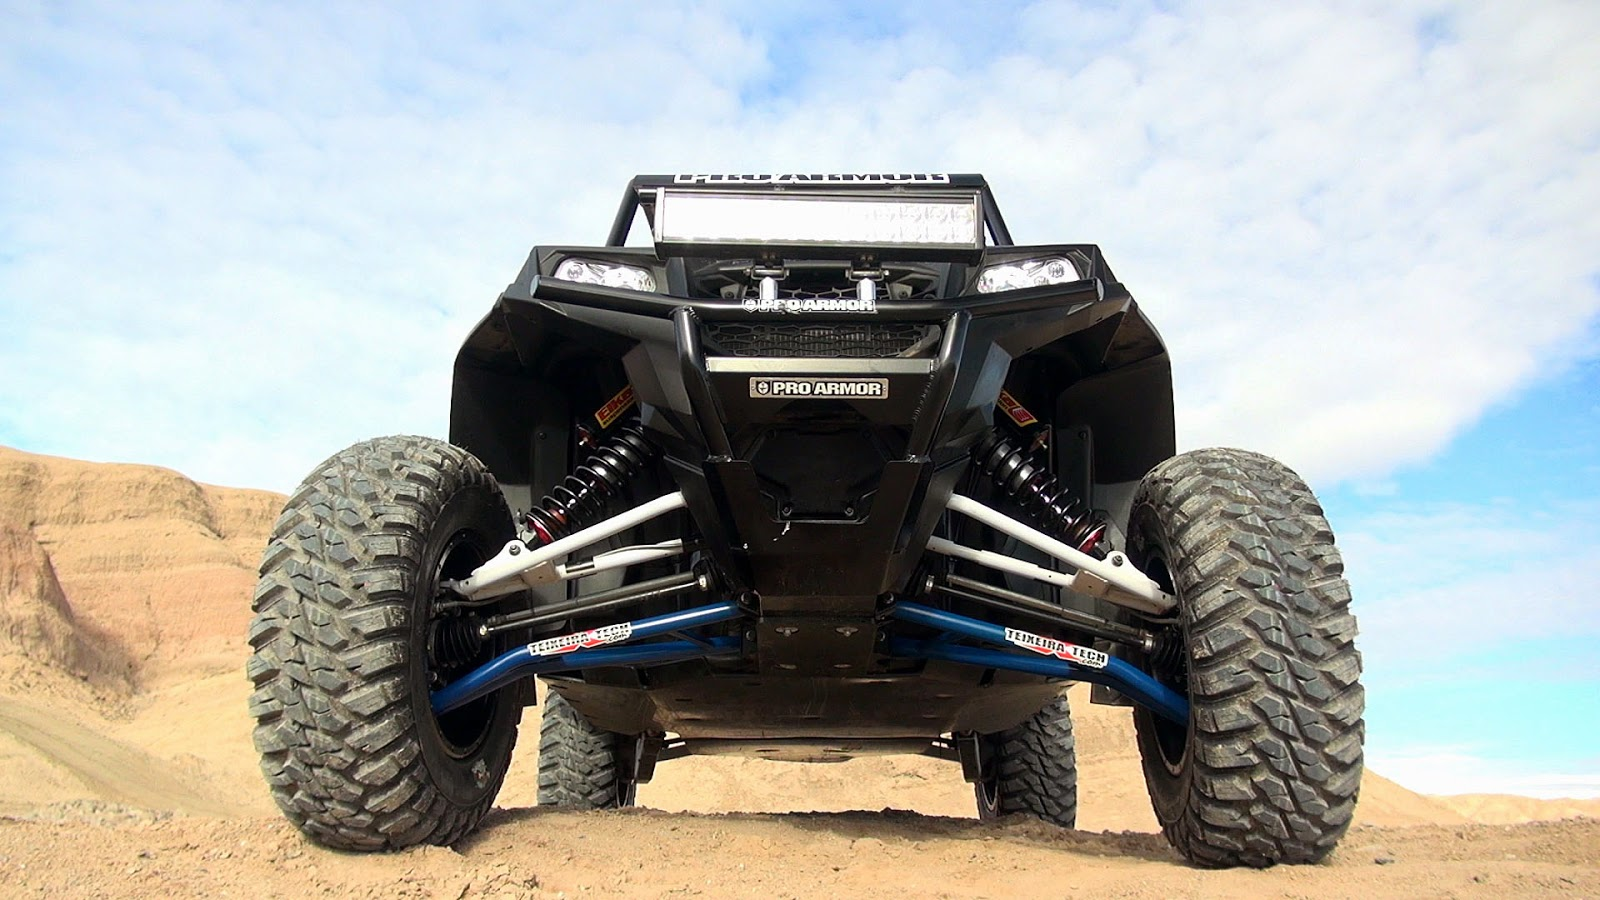 Polaris RZR XP 900 XGC A-arms